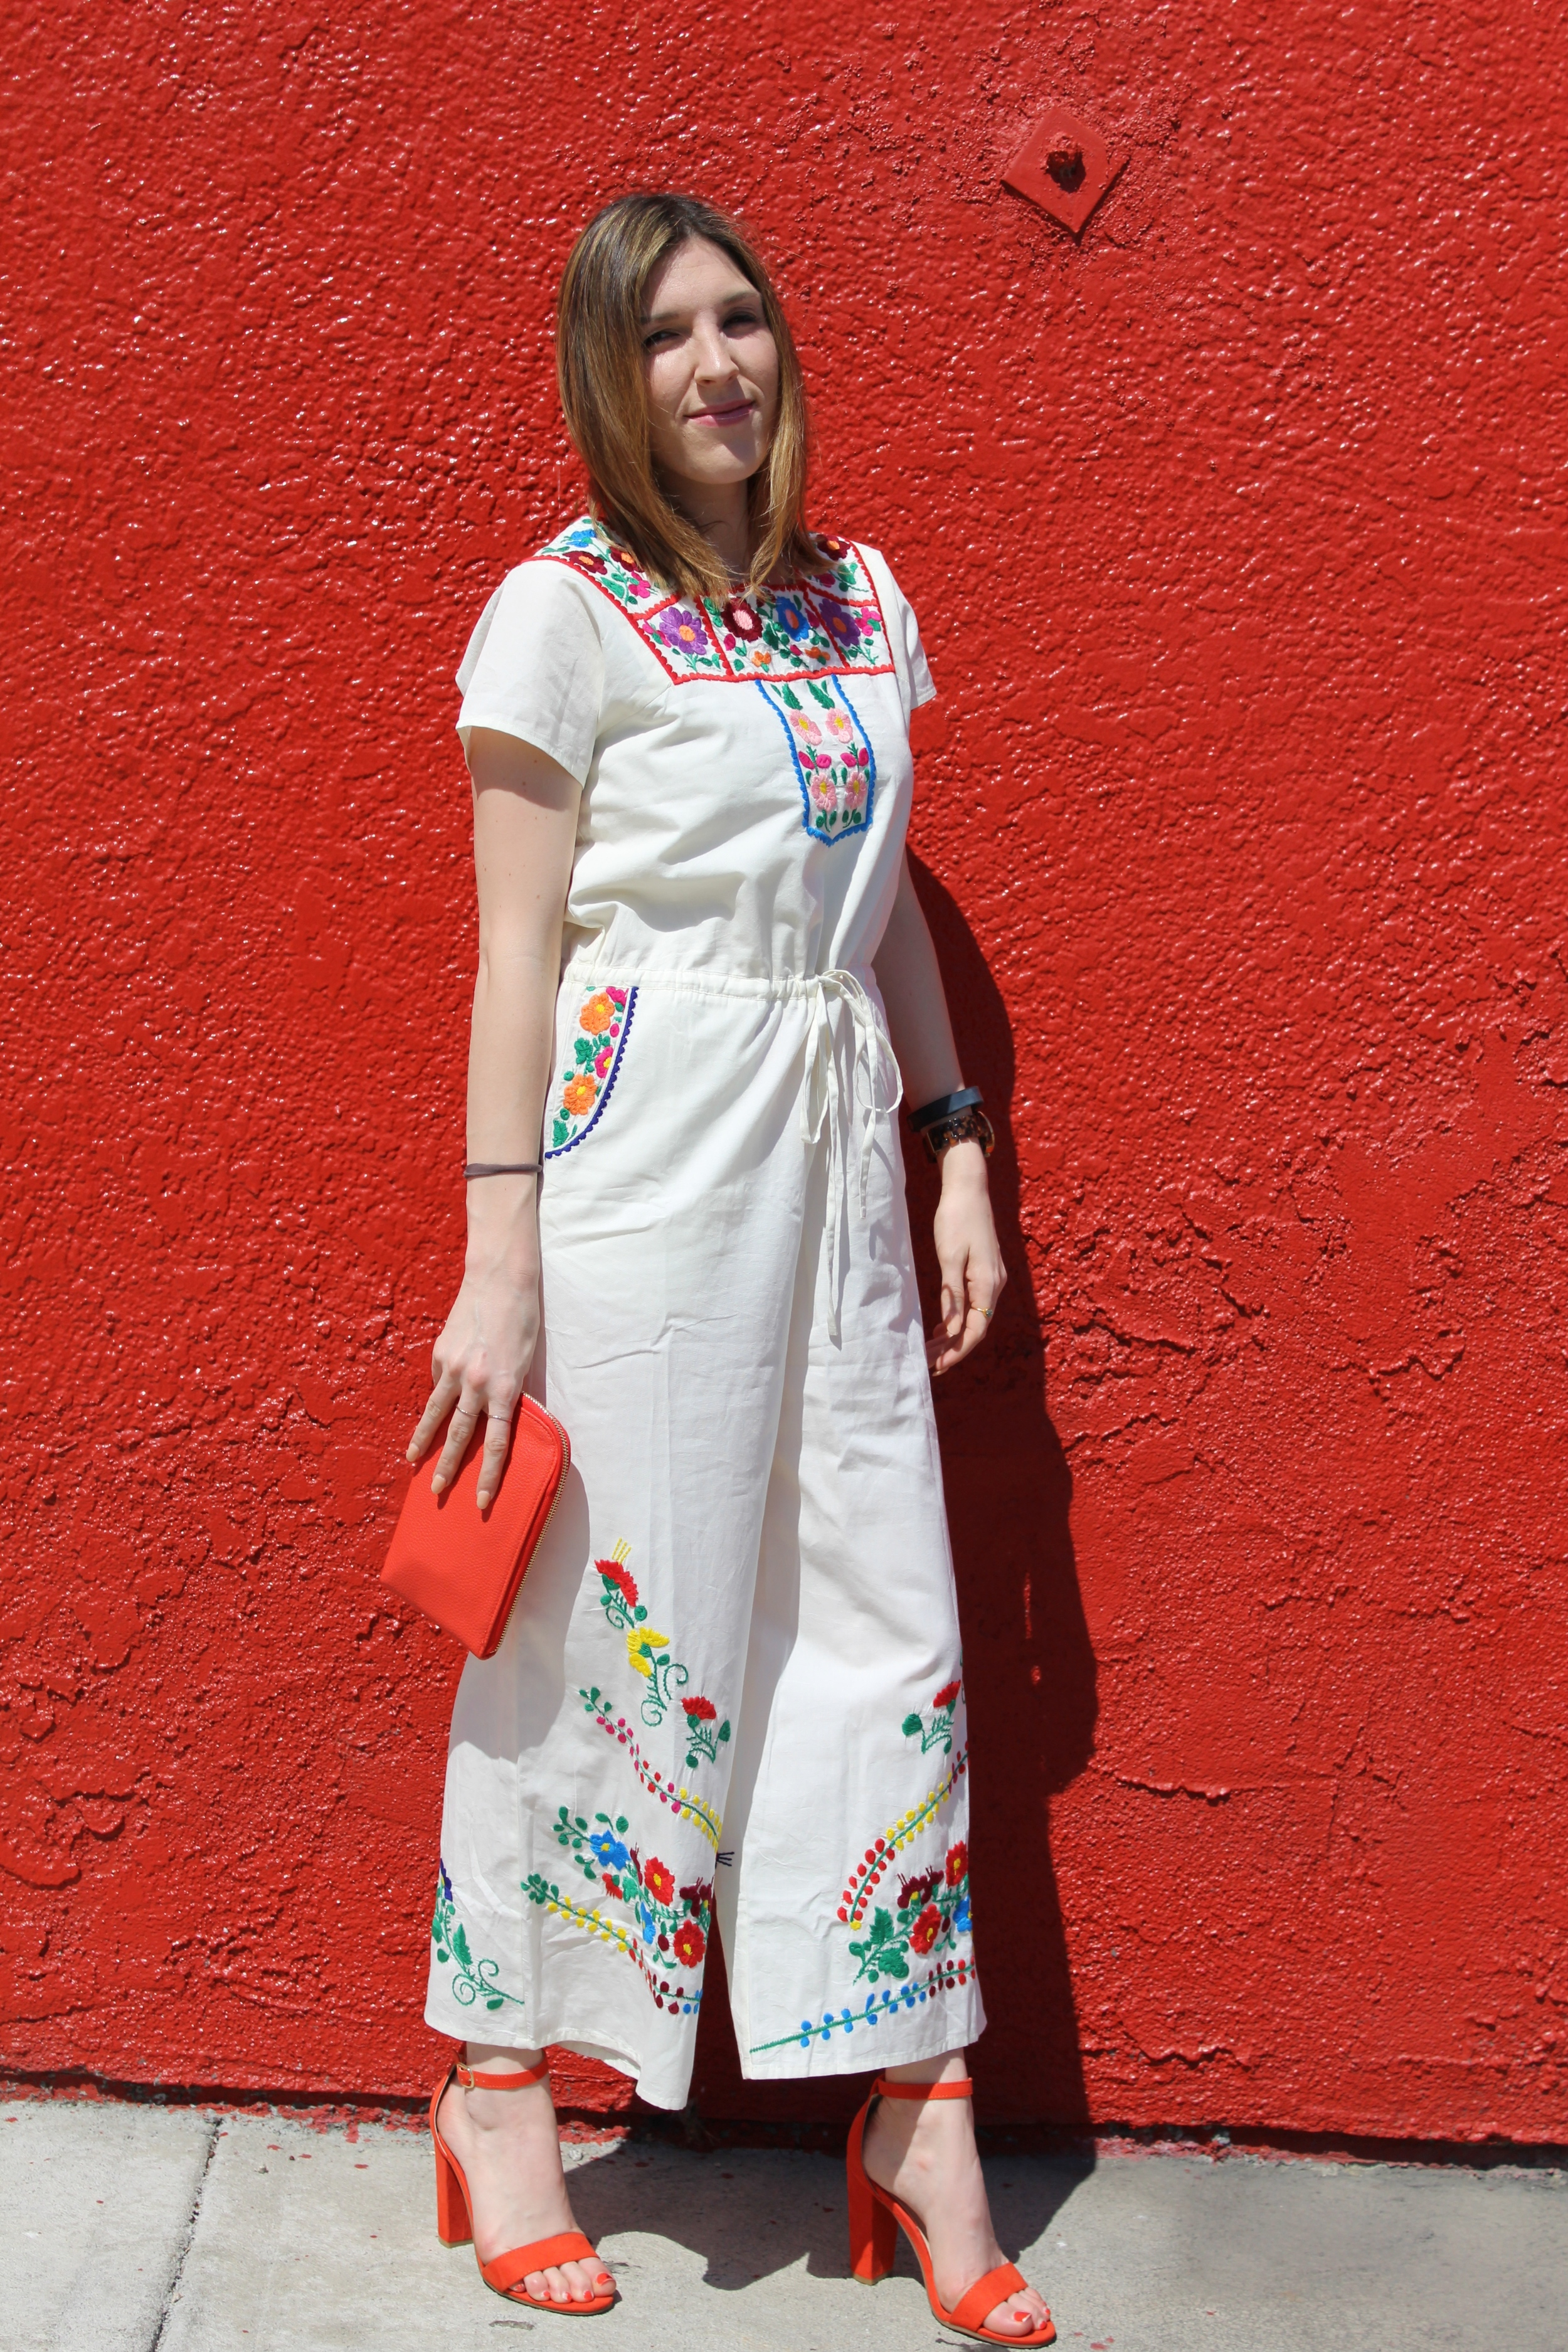 I absolutely adore embroidery! When I see embroidery I have to have it! This jumpsuit had just that effect on me.